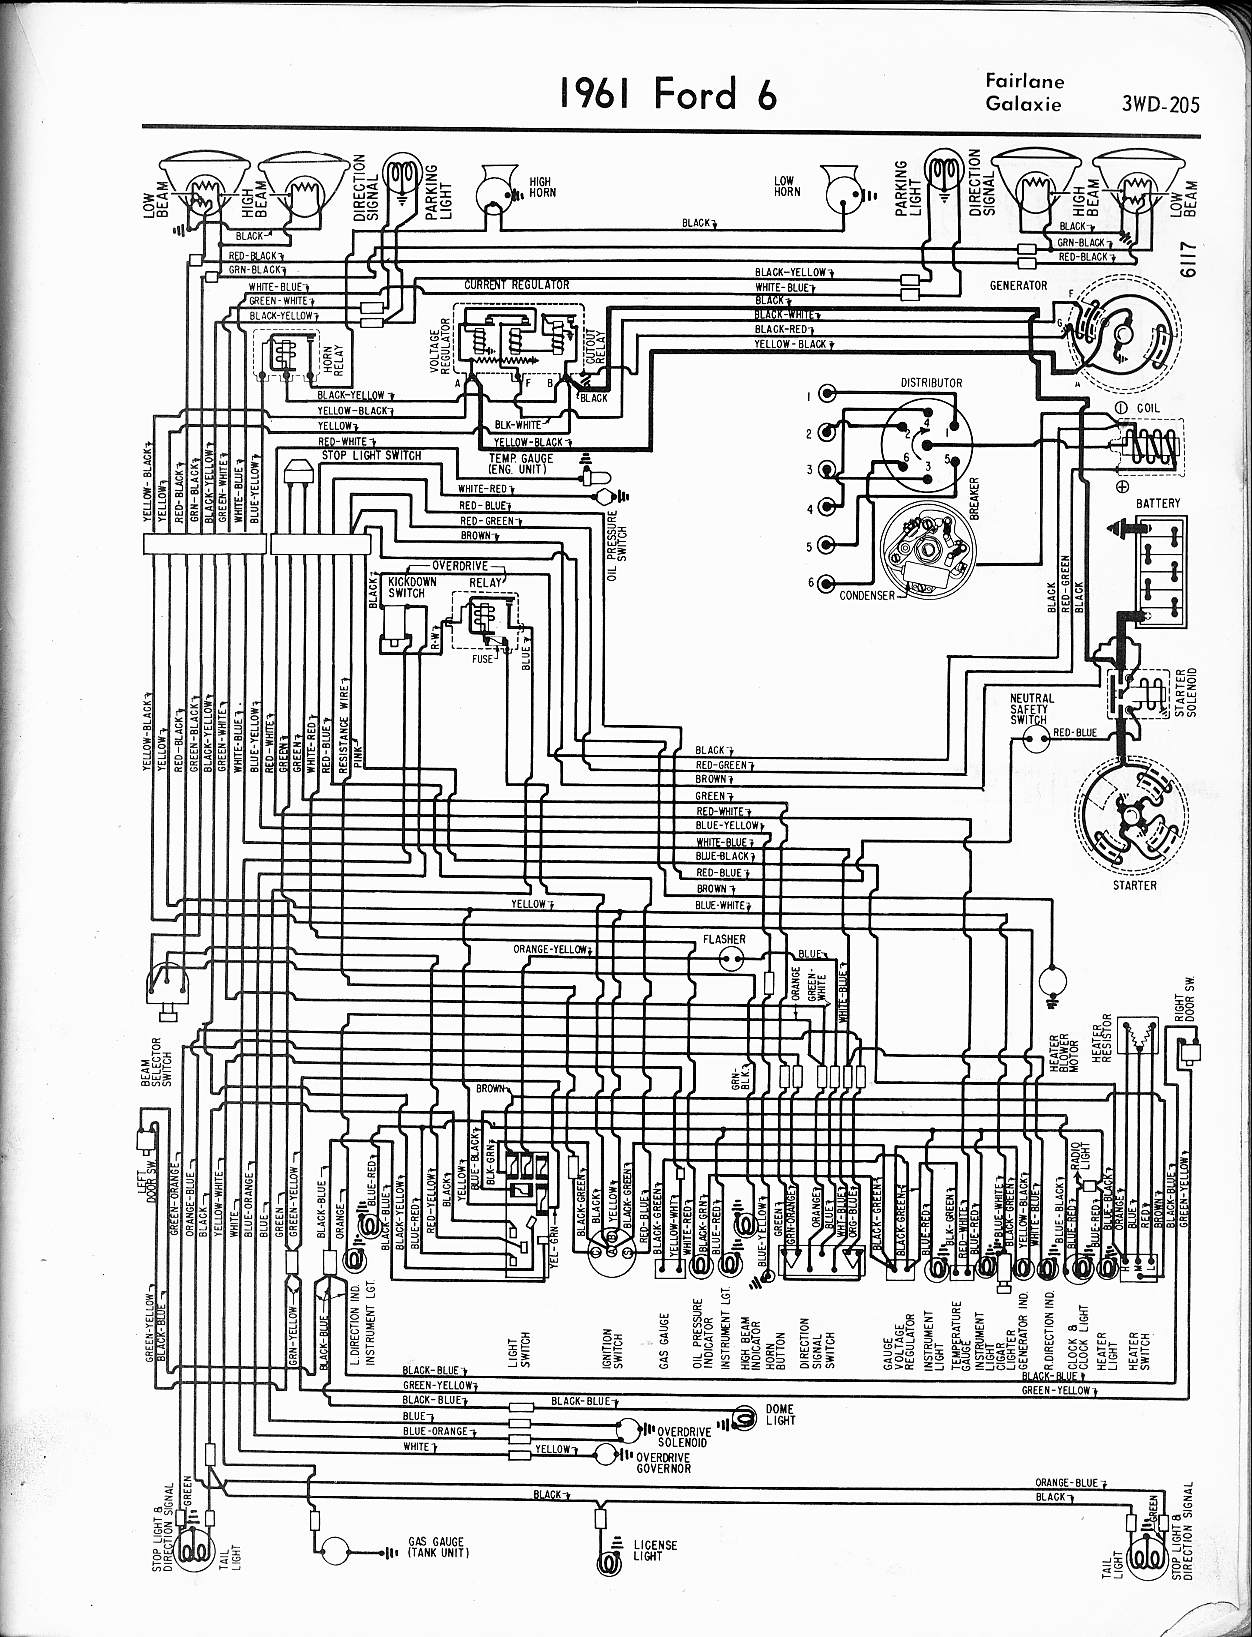 skoda fabia alarm wiring diagram best wiring libraryford falcon au series 2 fuse diagram simple wiring schema ford points ignition wiring diagram ford